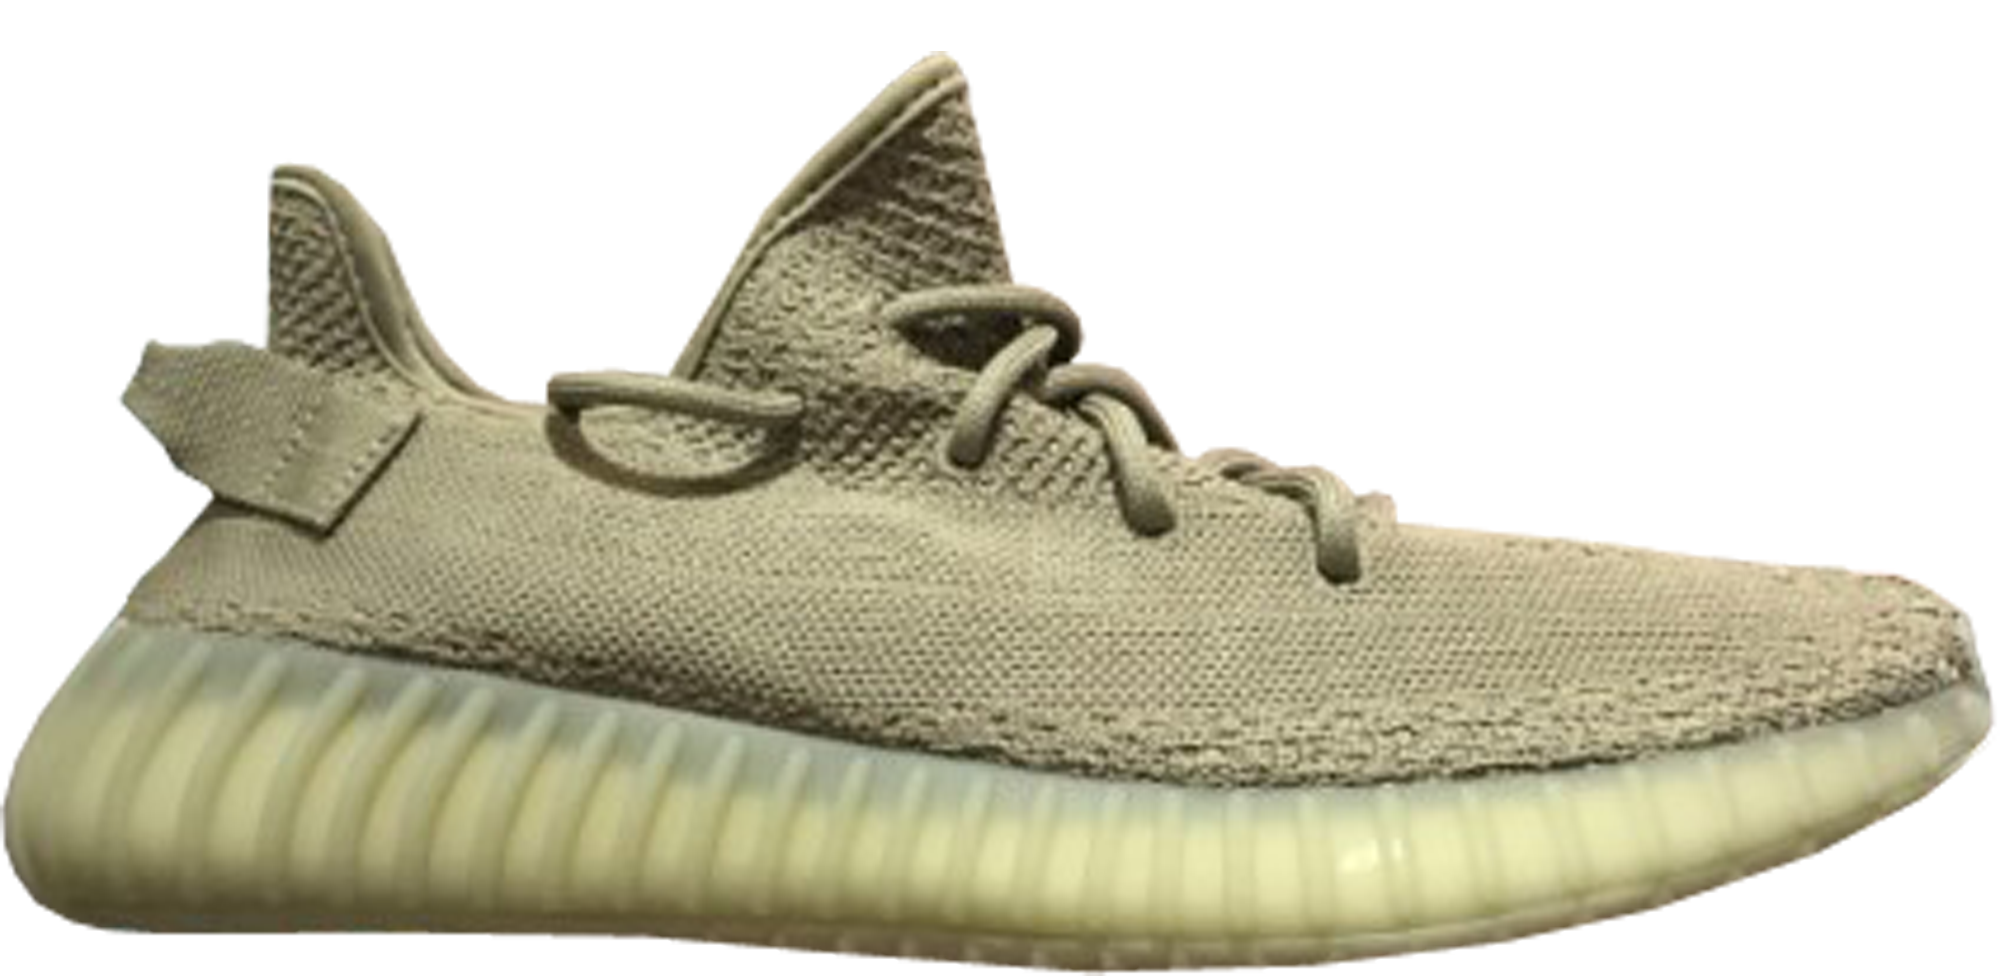 1dba3f095bc44 adidas Yeezy Boost 350 V2 Dark Green - StockX News